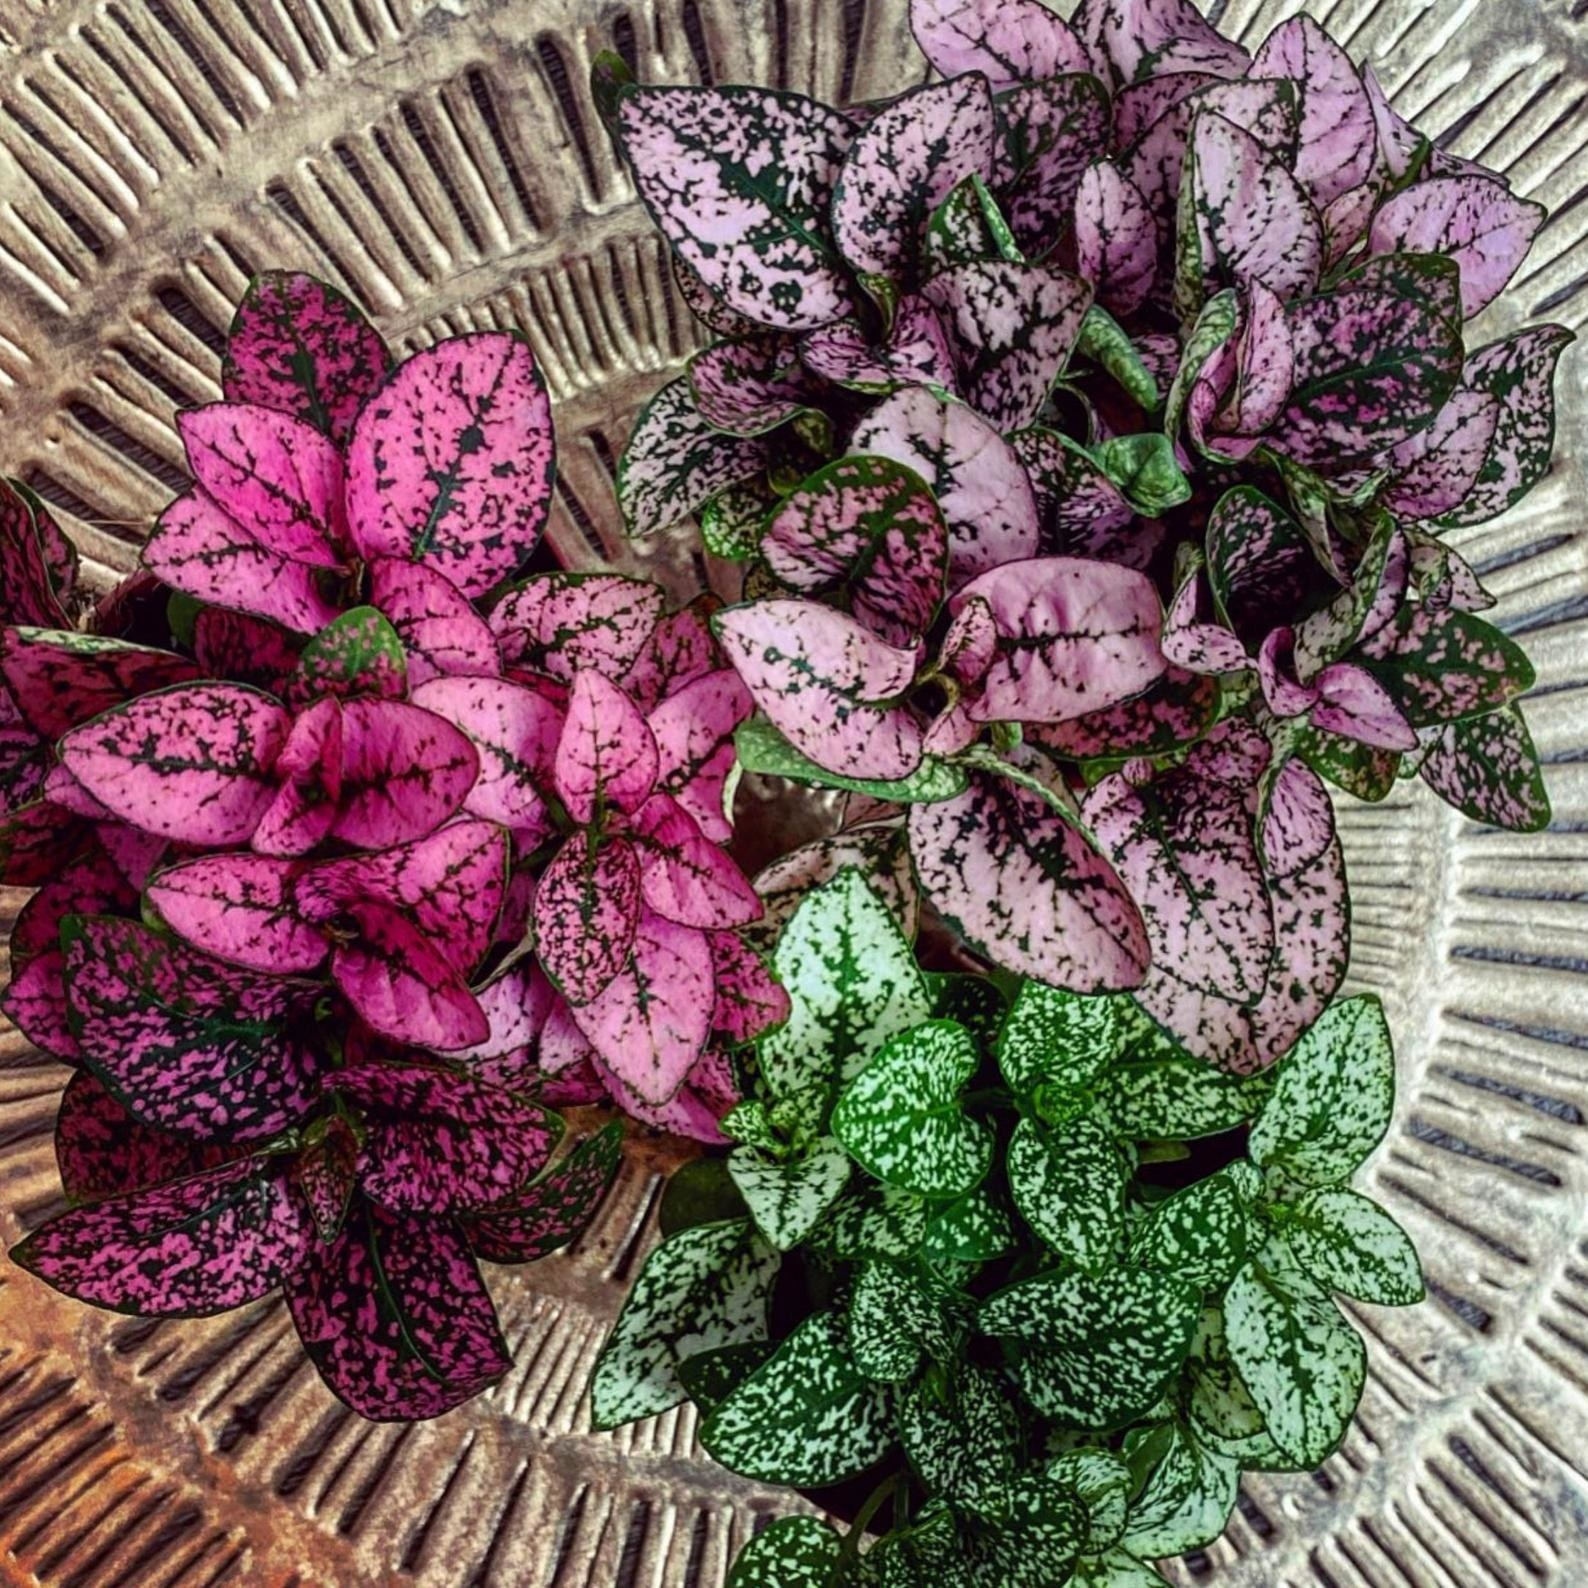 Three different colored polka dot plants sitting on a table